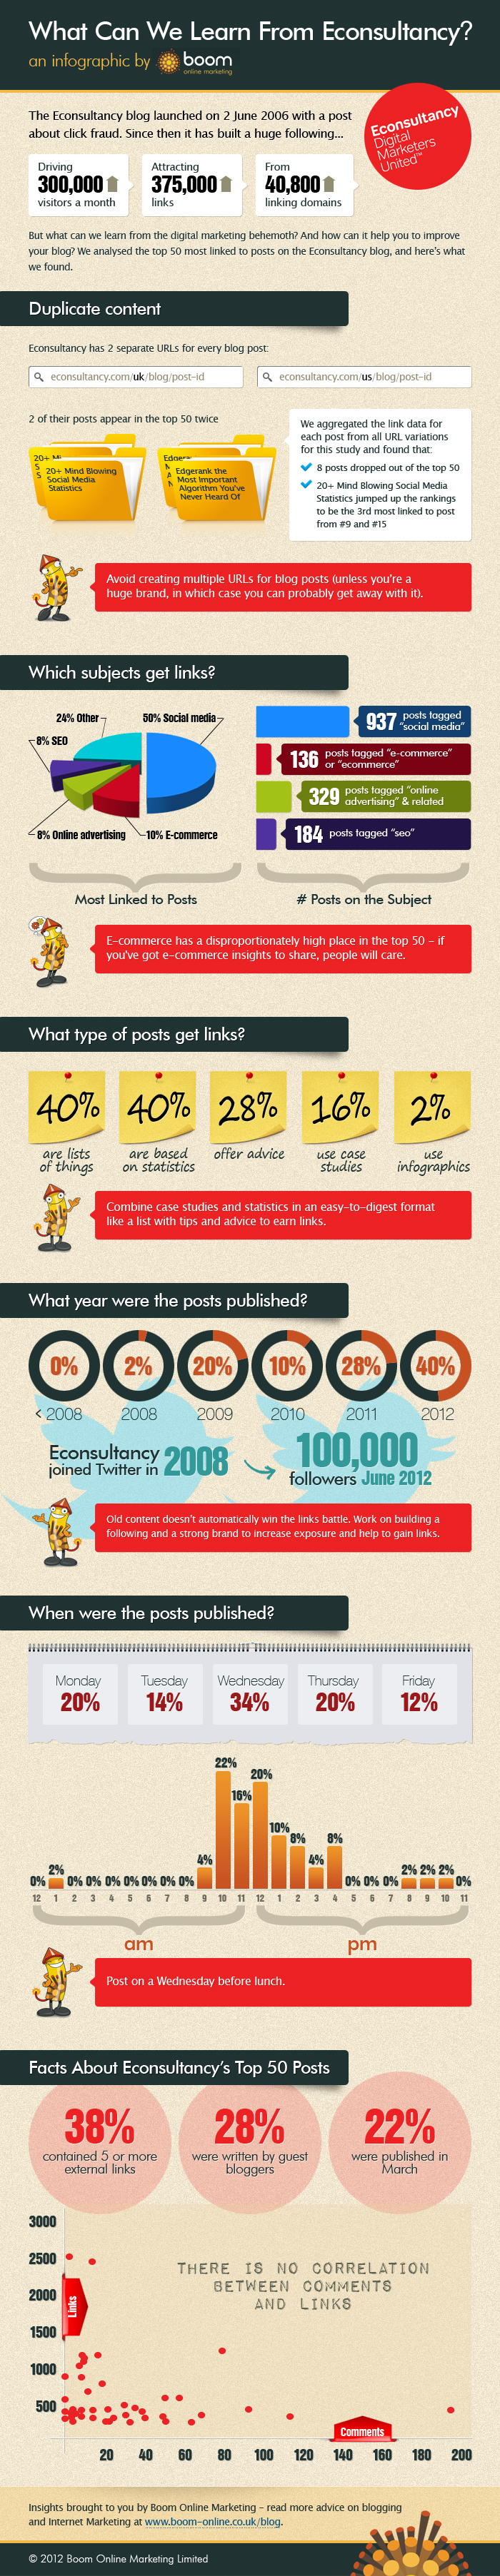 What Can We Learn from Econsultancy an infographic